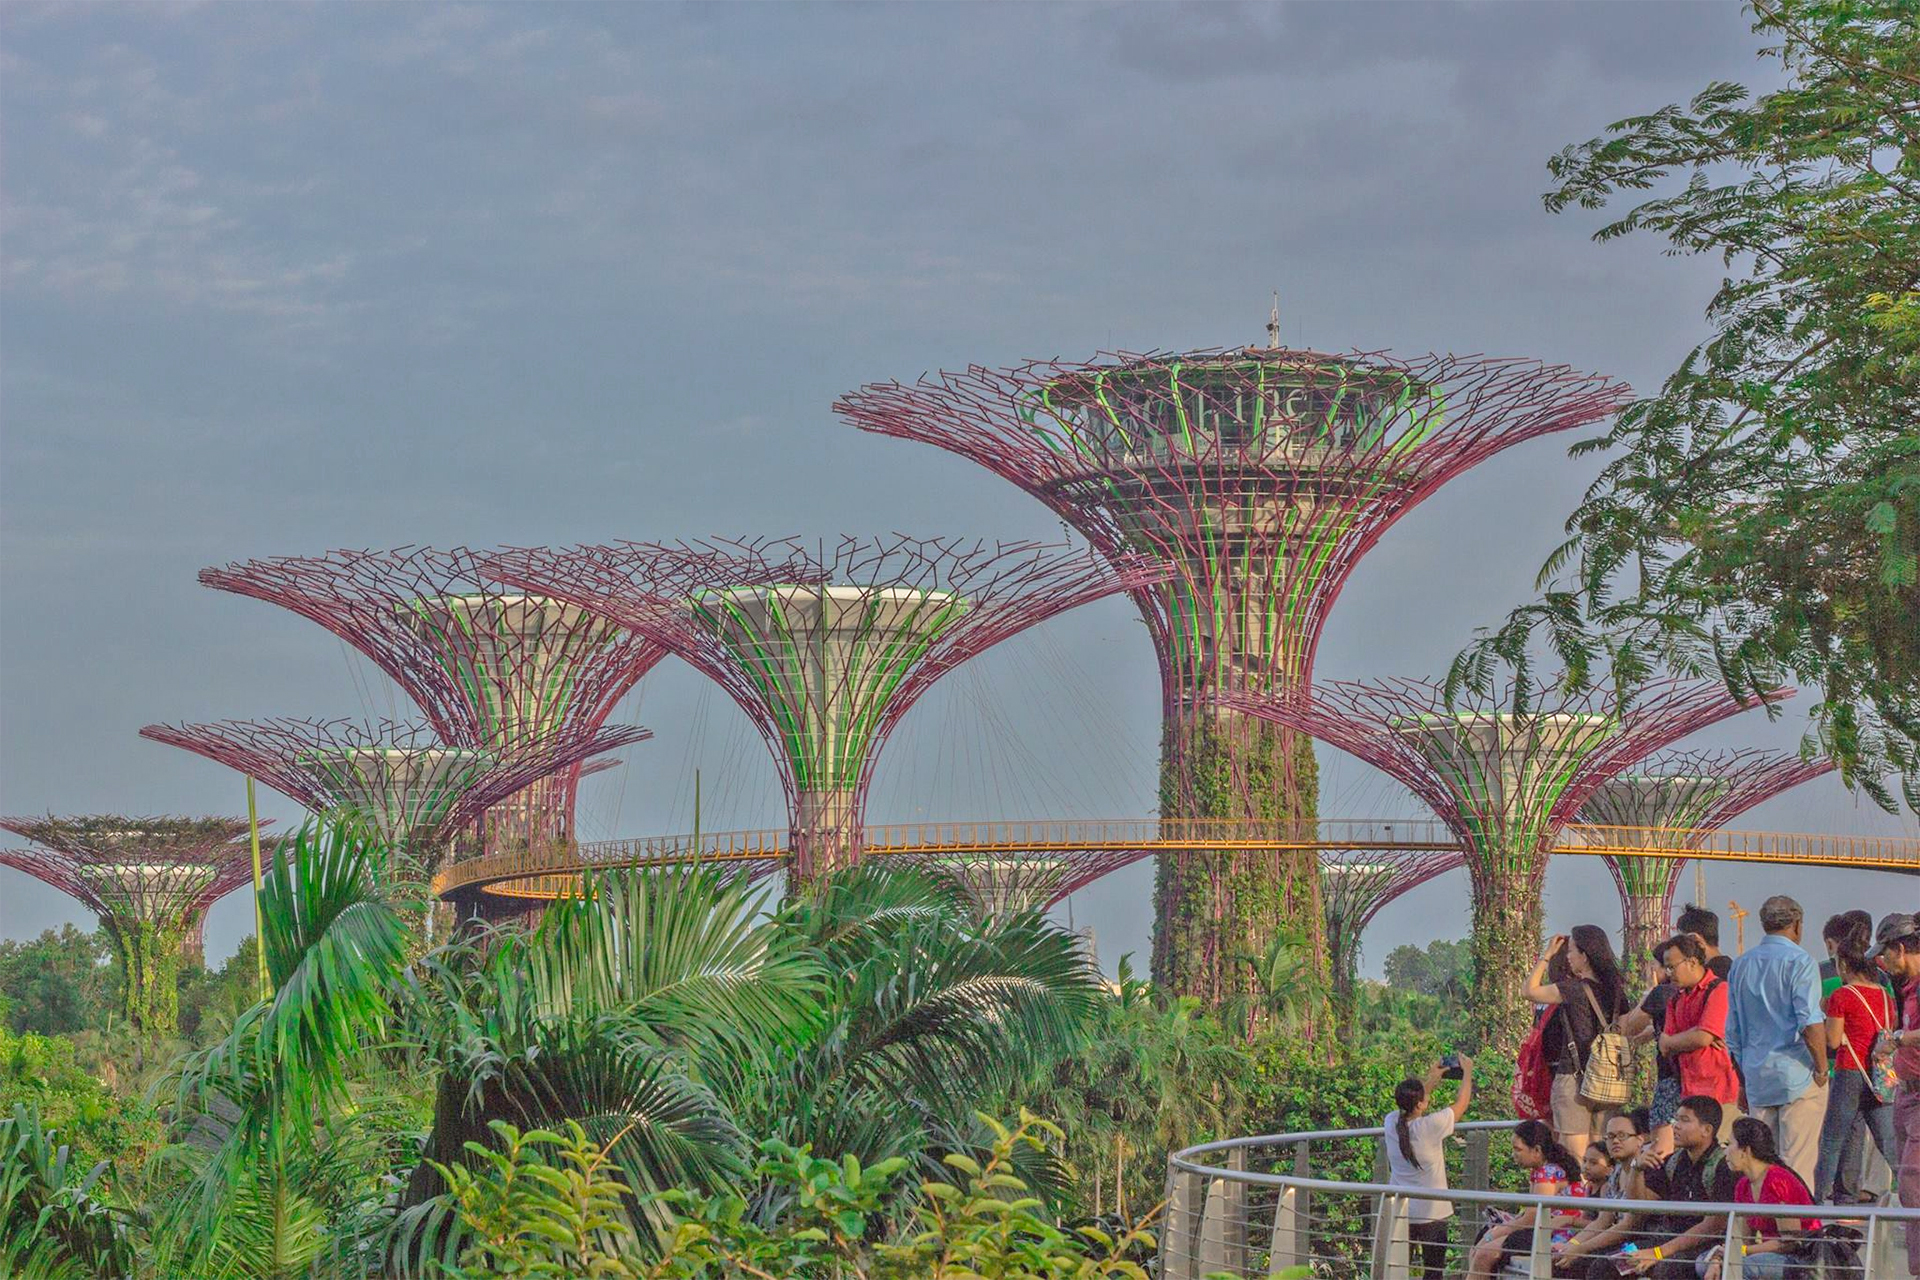 Travel Photography: Singapore in Photos and Why We Love It